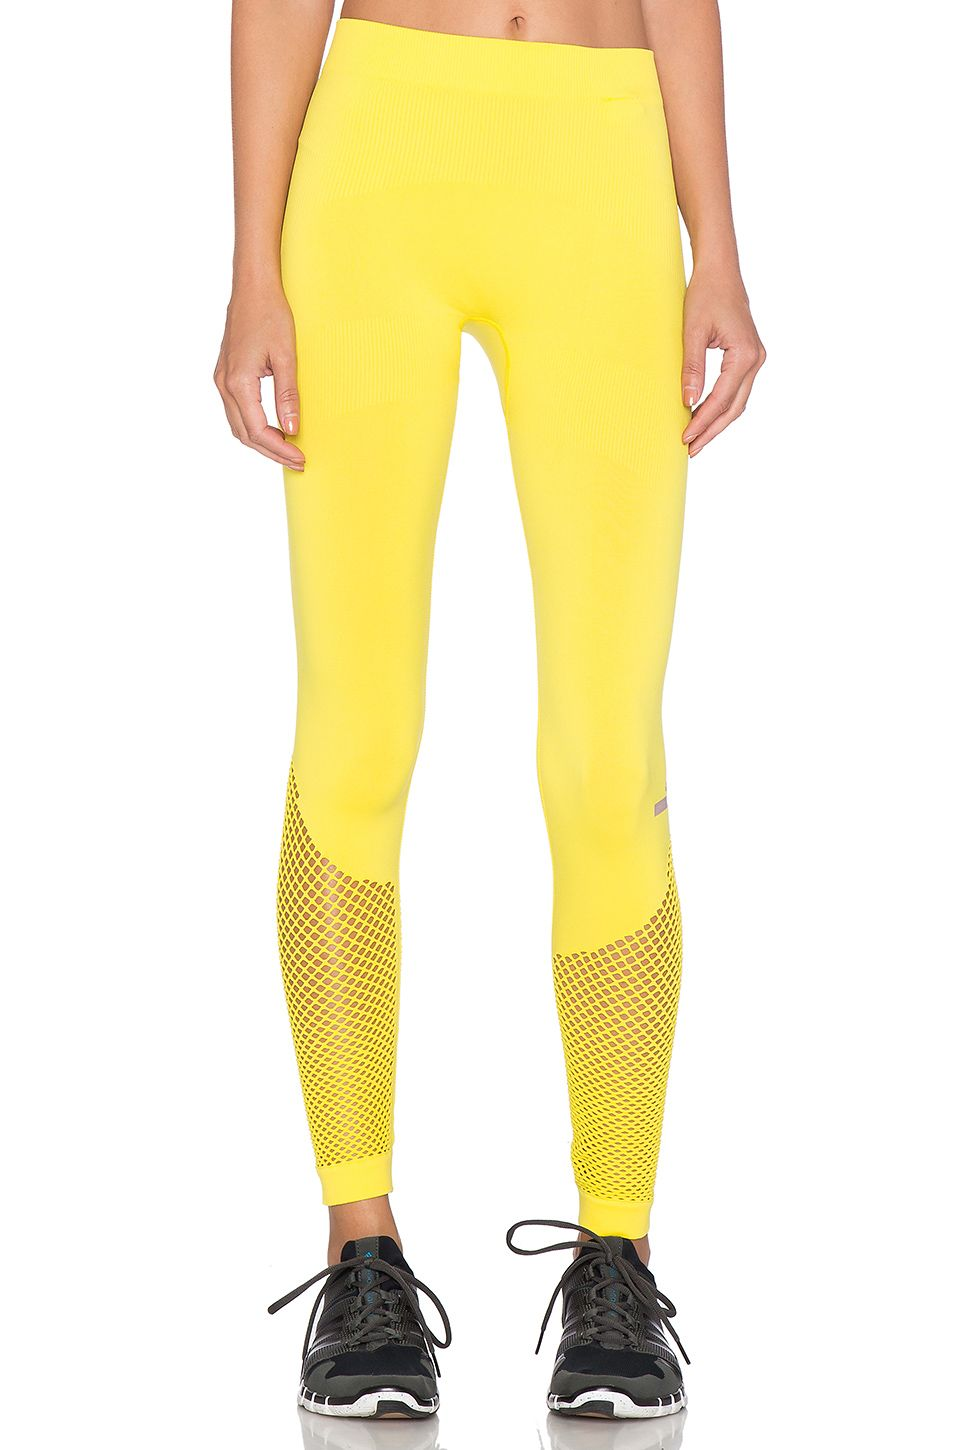 In love with these! adidas by Stella McCartney Essentials Studio Tight in Lux Yellow